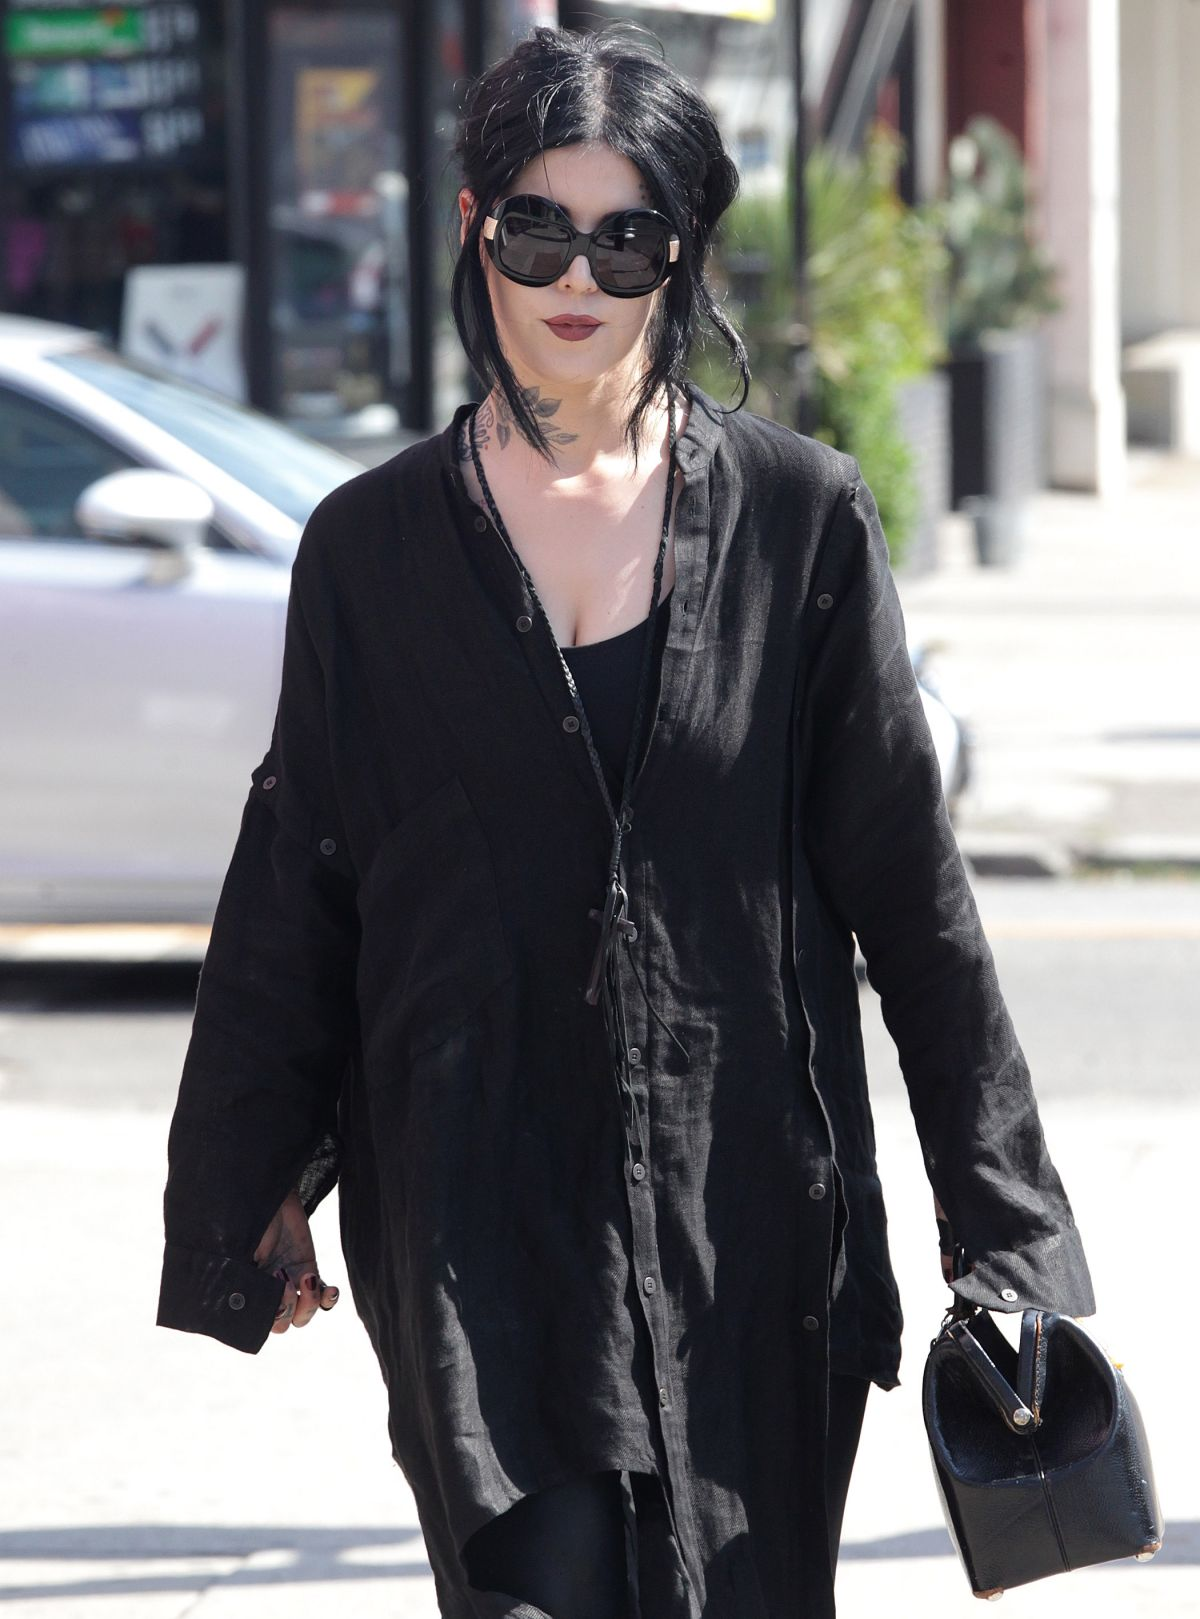 KAT VON D Out and About in Los Angeles 08/26/2016